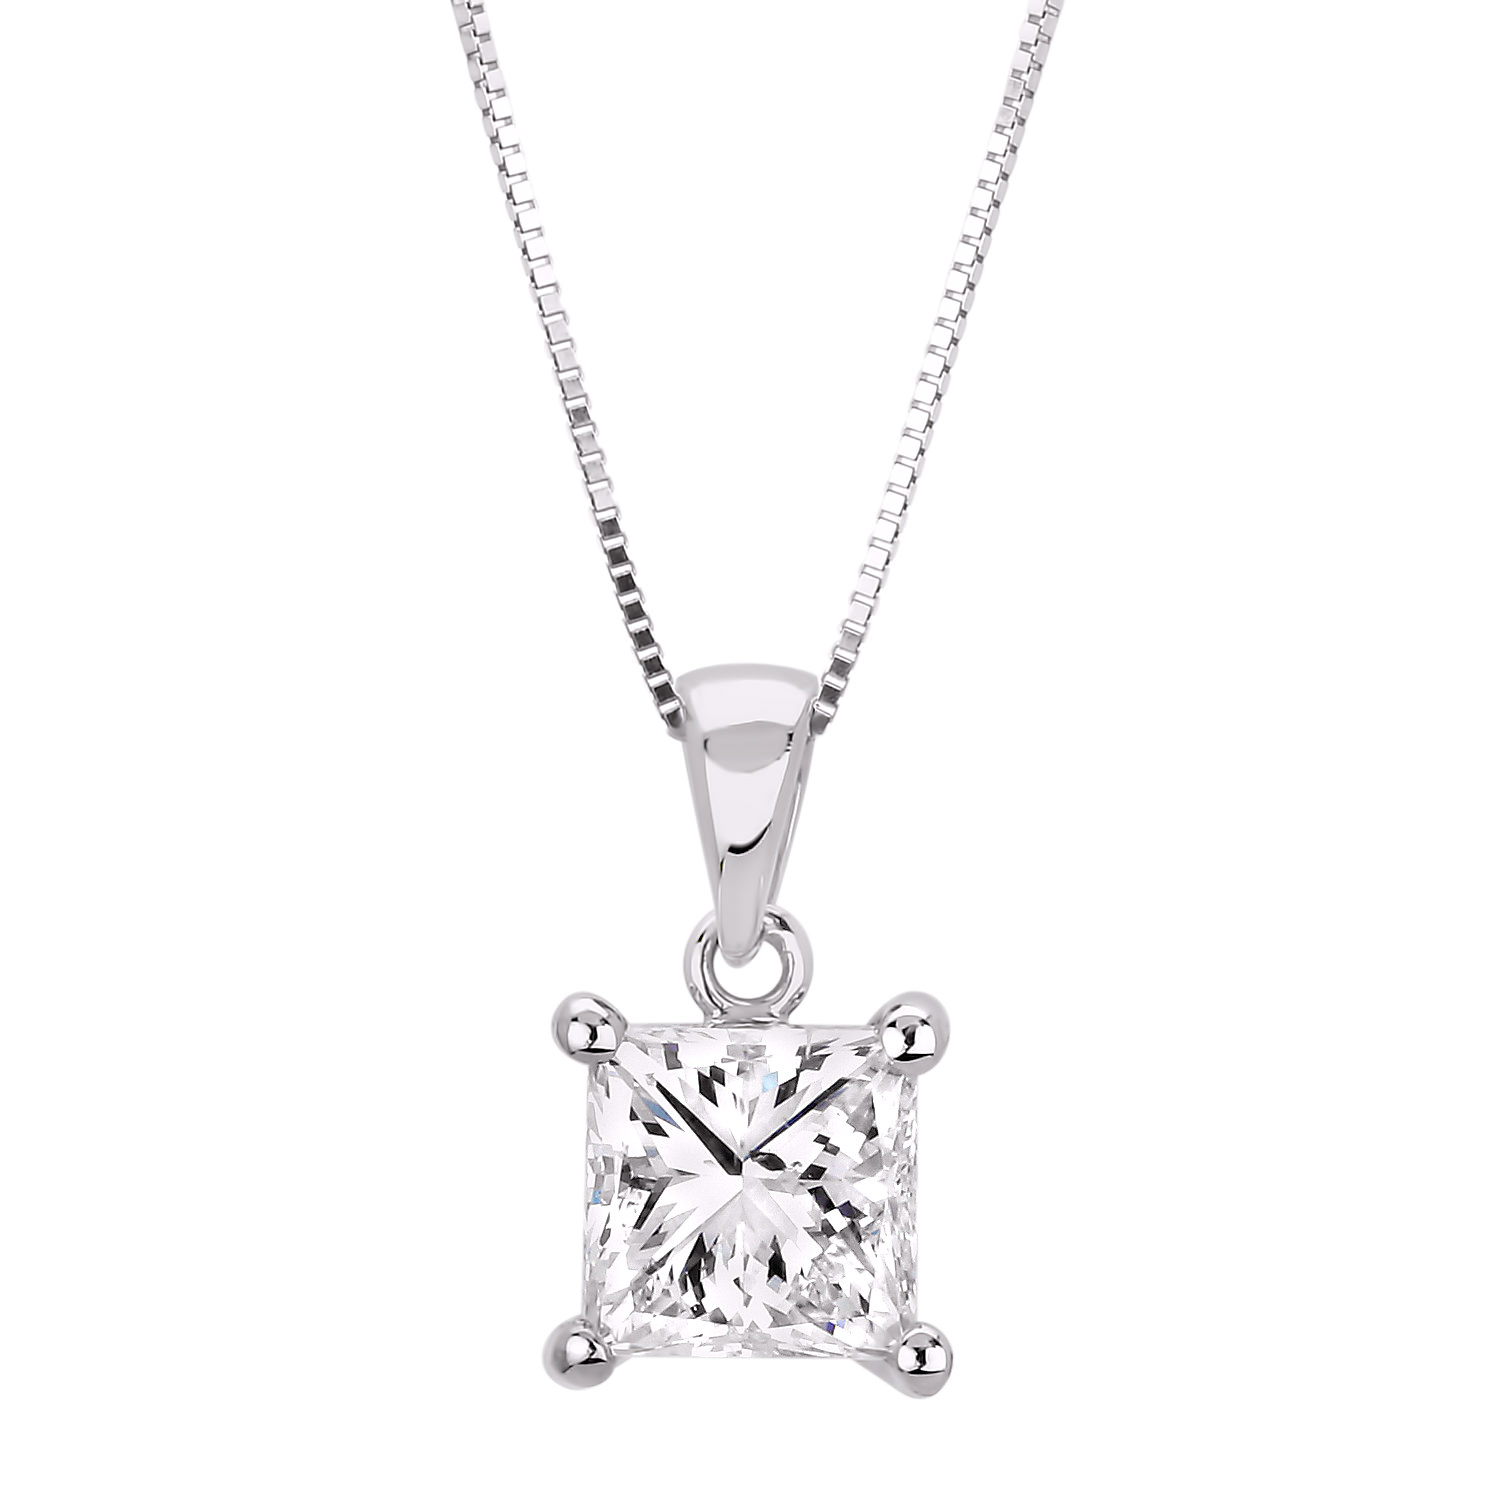 Diamond Solitaire Pendants SEC-P993 (Pendants)